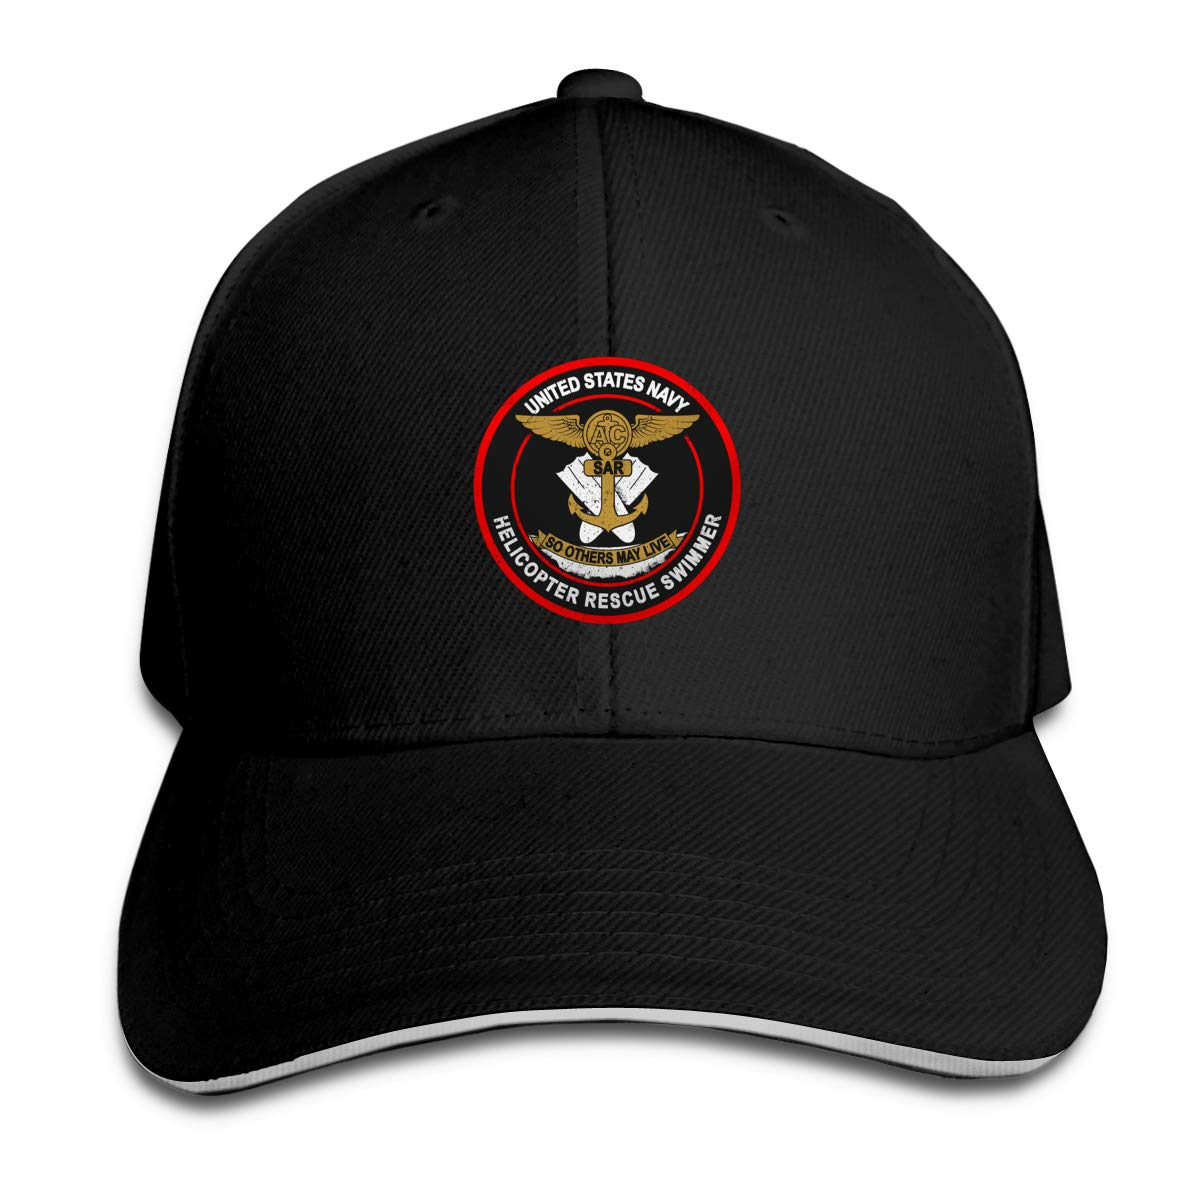 Helicopter Search and Rescue Swimmer Logo Classic Adjustable Cotton Baseball Caps Trucker Driver Hat Outdoor Cap Black